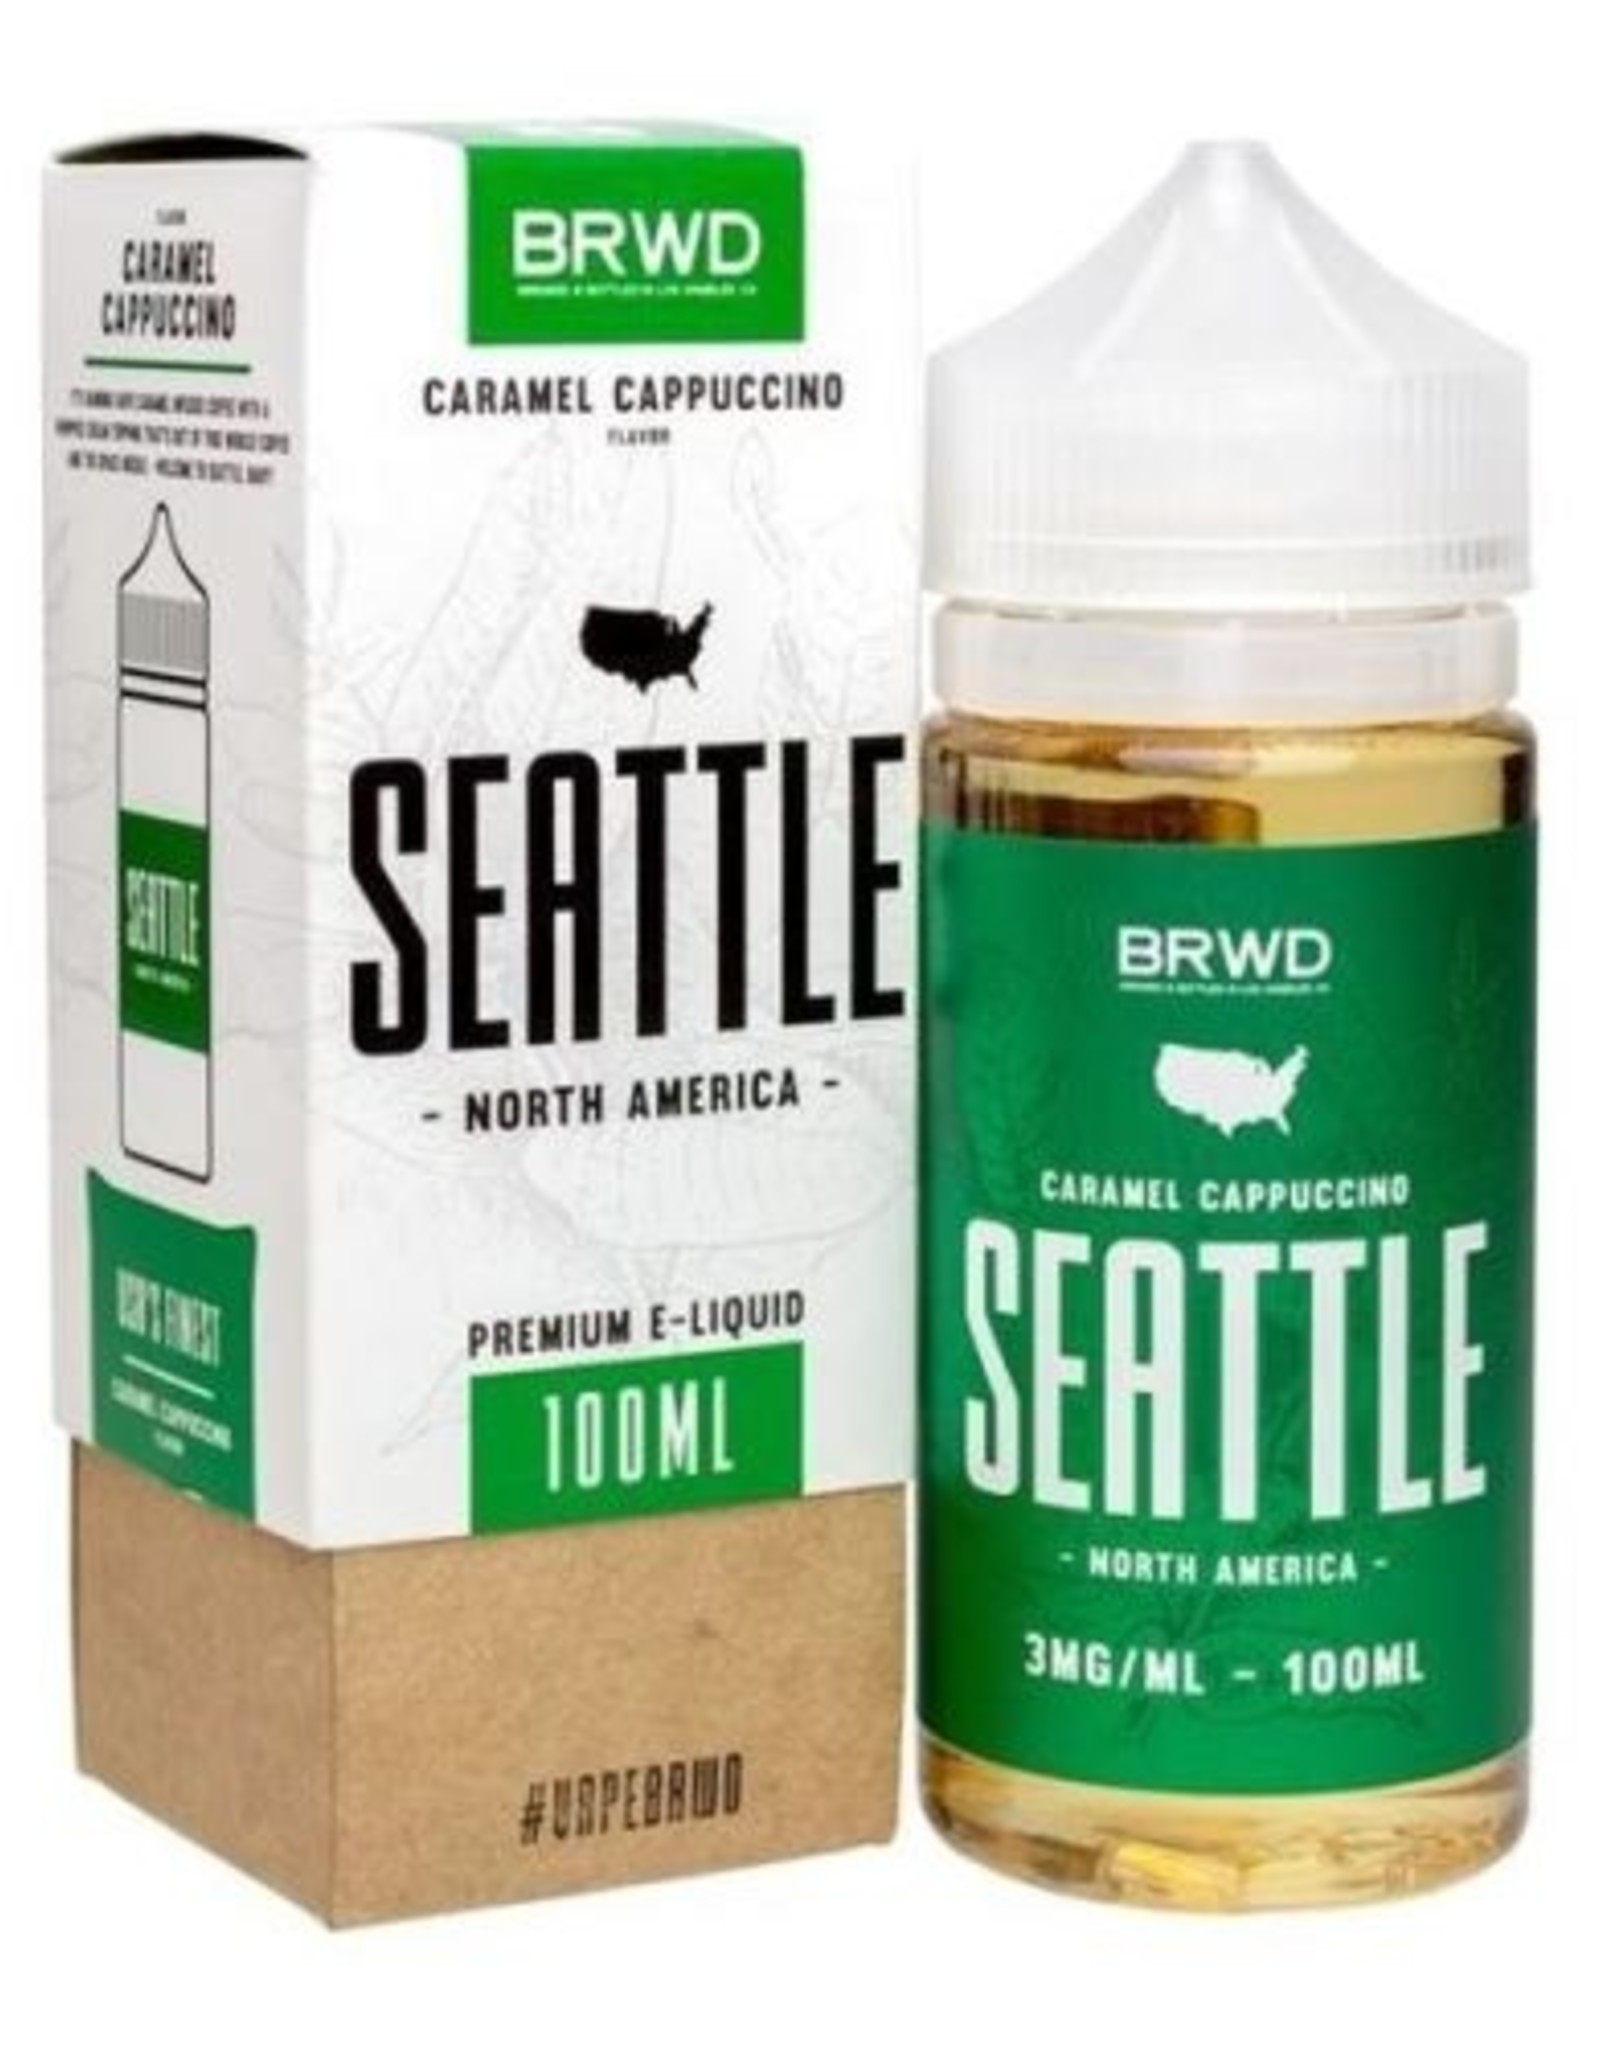 BRWD Seattle By BRWD